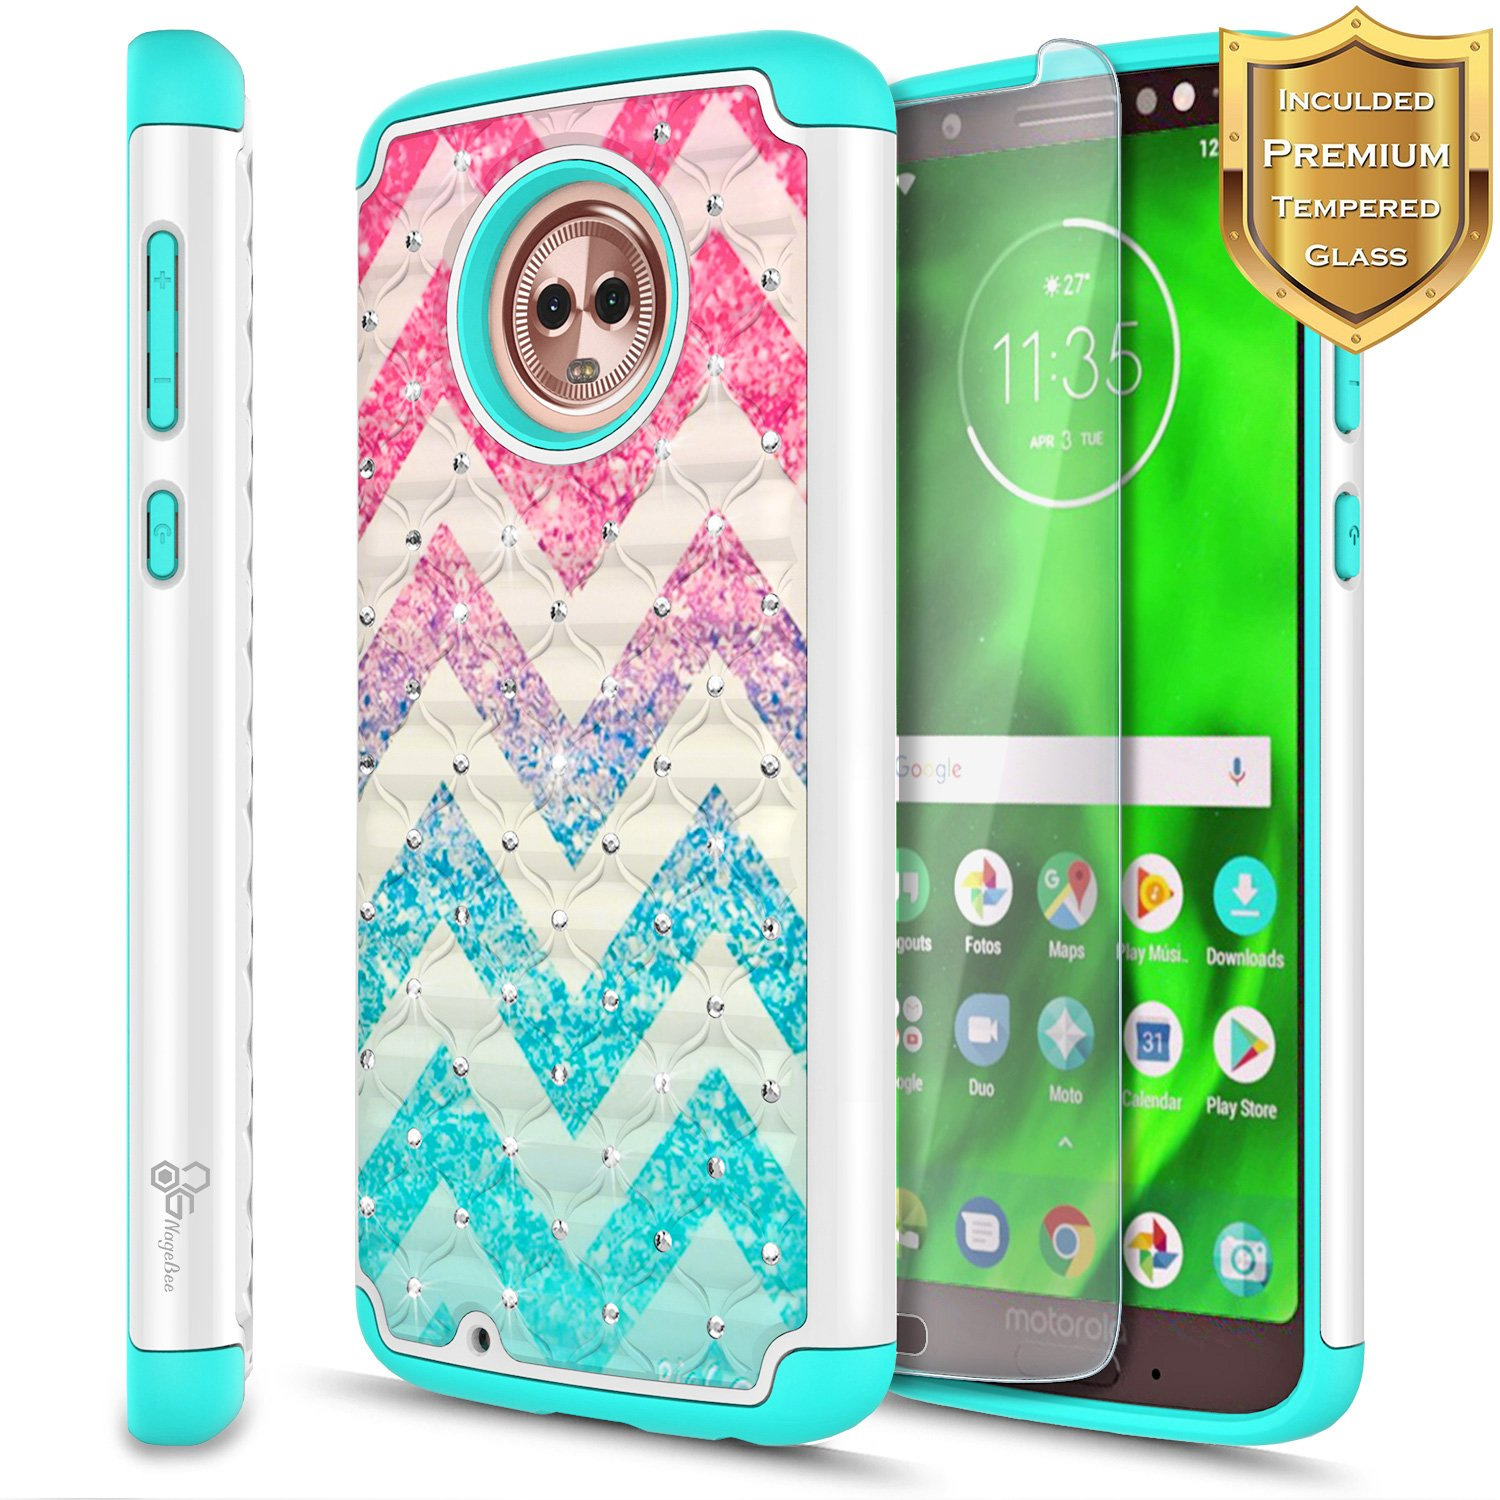 super popular 6c533 dbccb Details about For Motorola Moto G6/G6 Play/G6 Forge Case | Hybrid Bling  Rubber Phone Cover